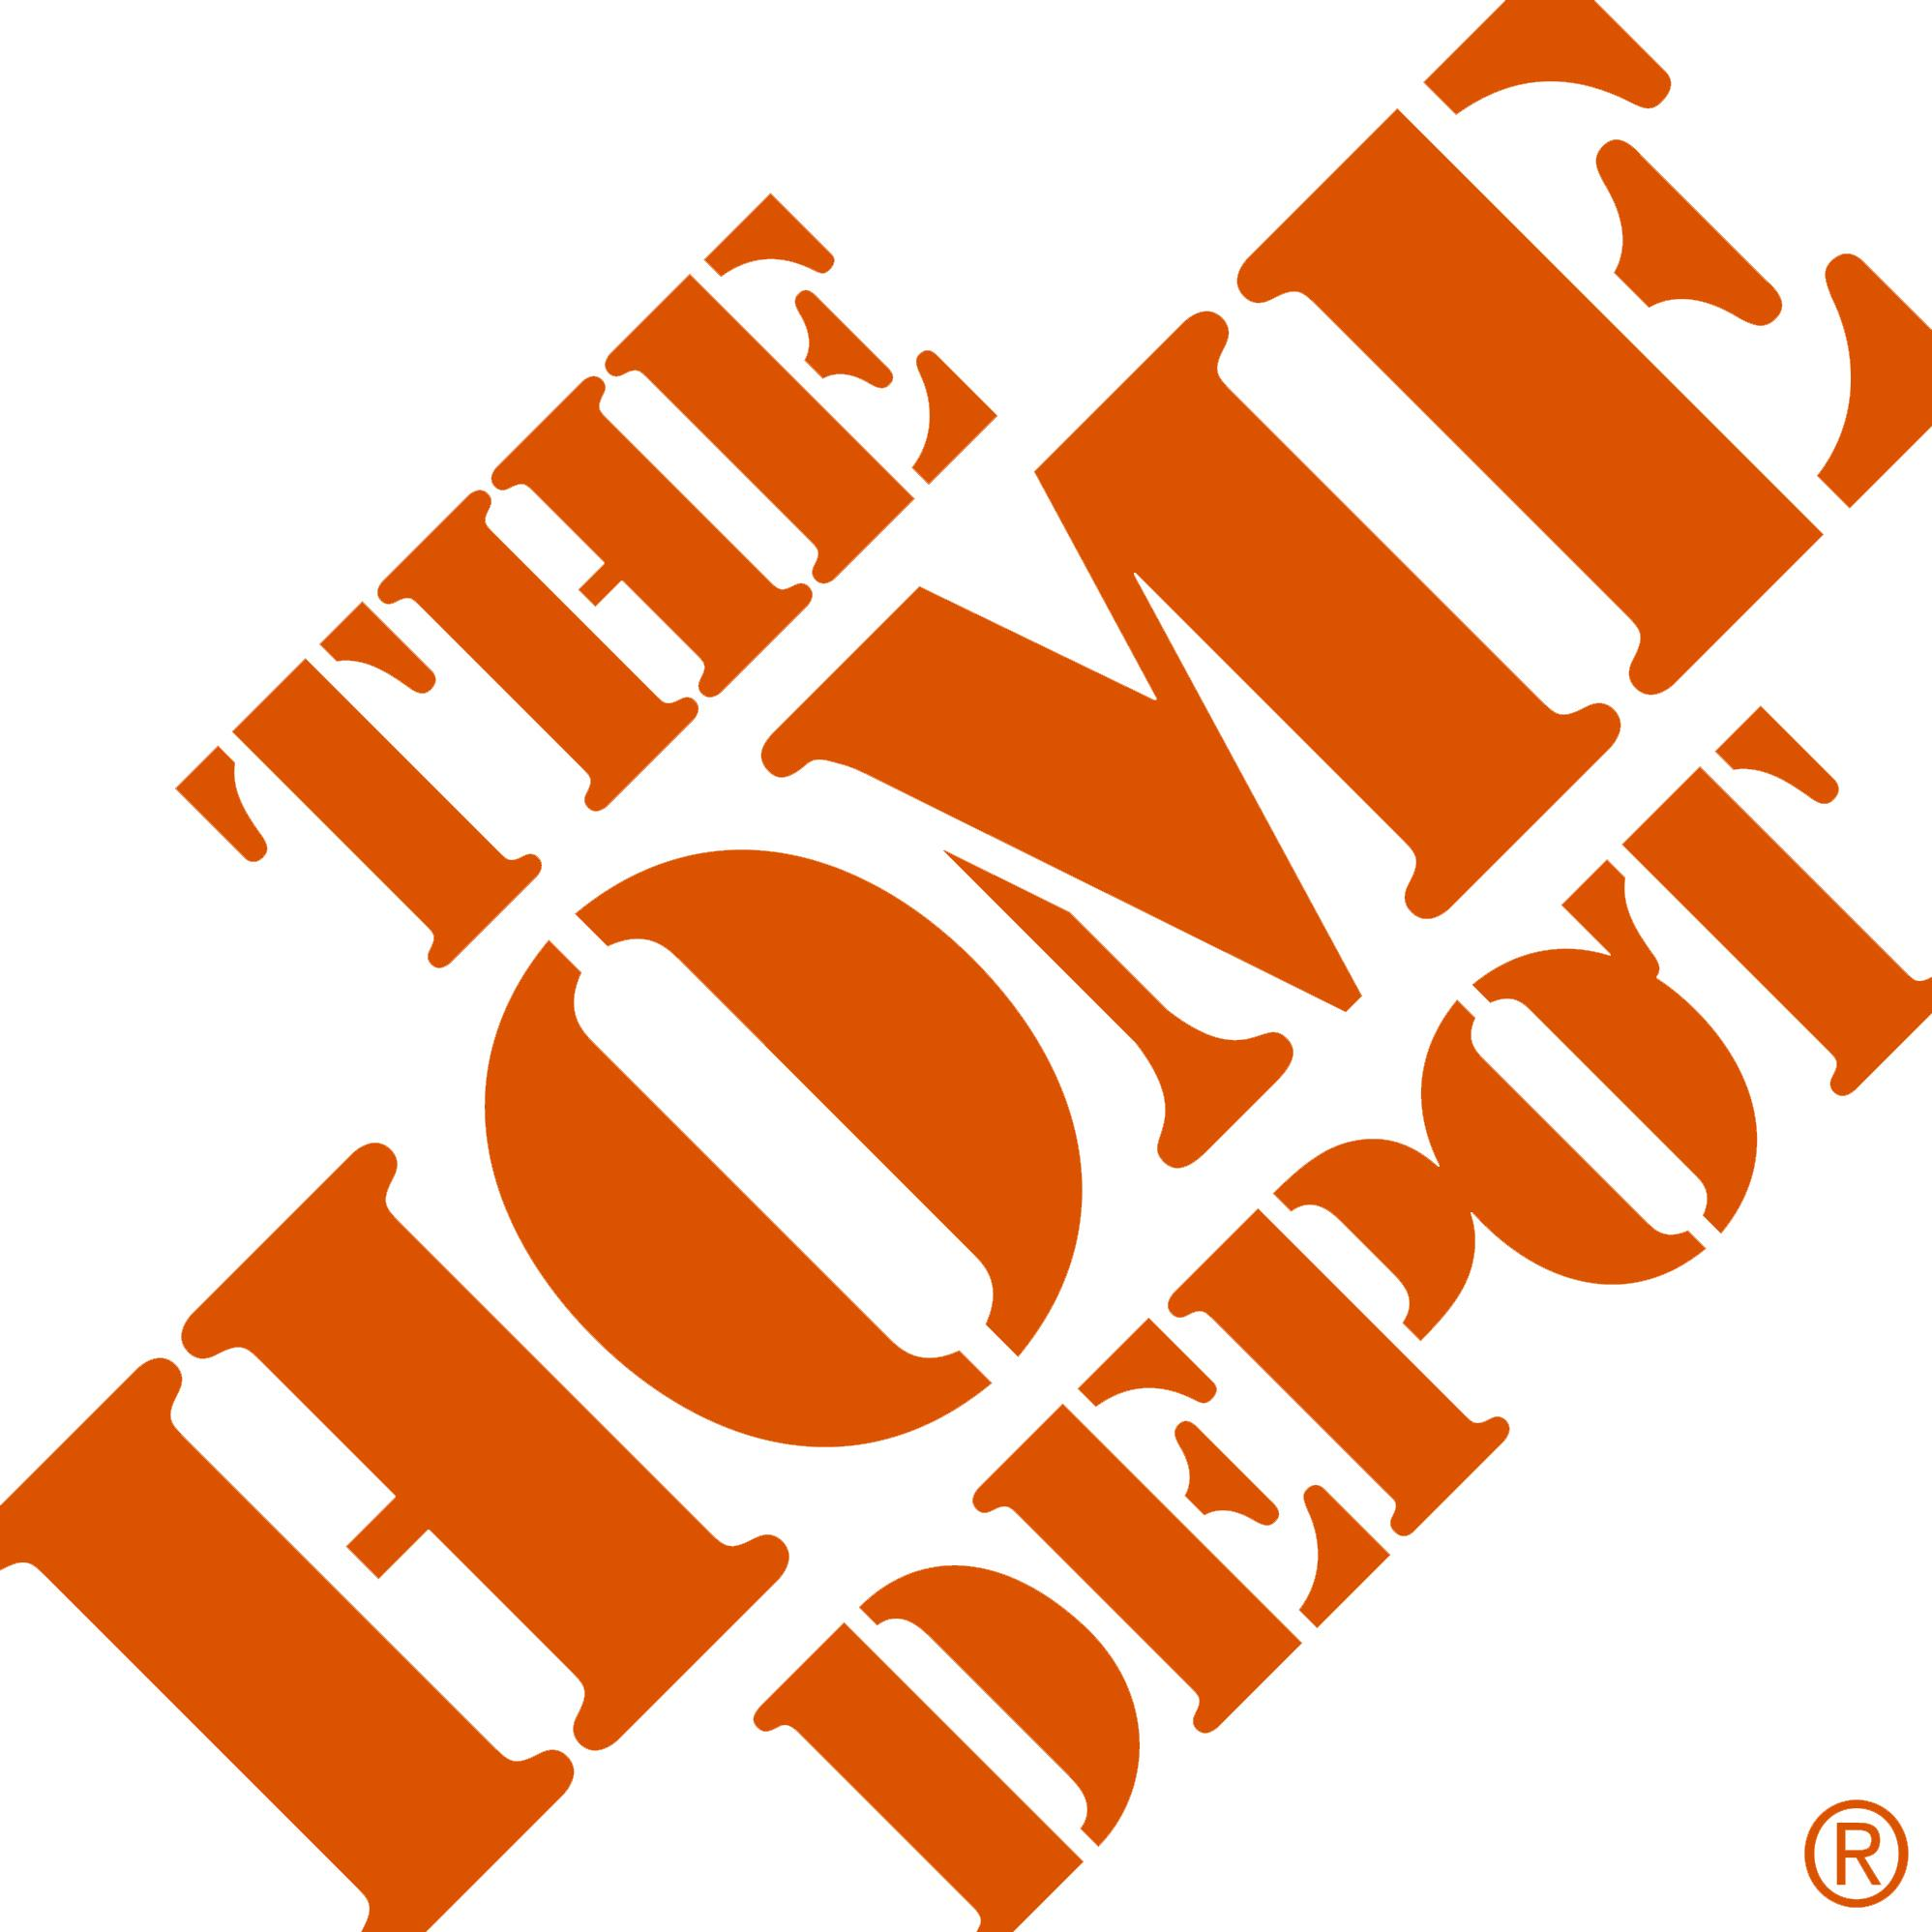 Home Depot Between Tailwinds And Macroeconomic Uncertainty ...